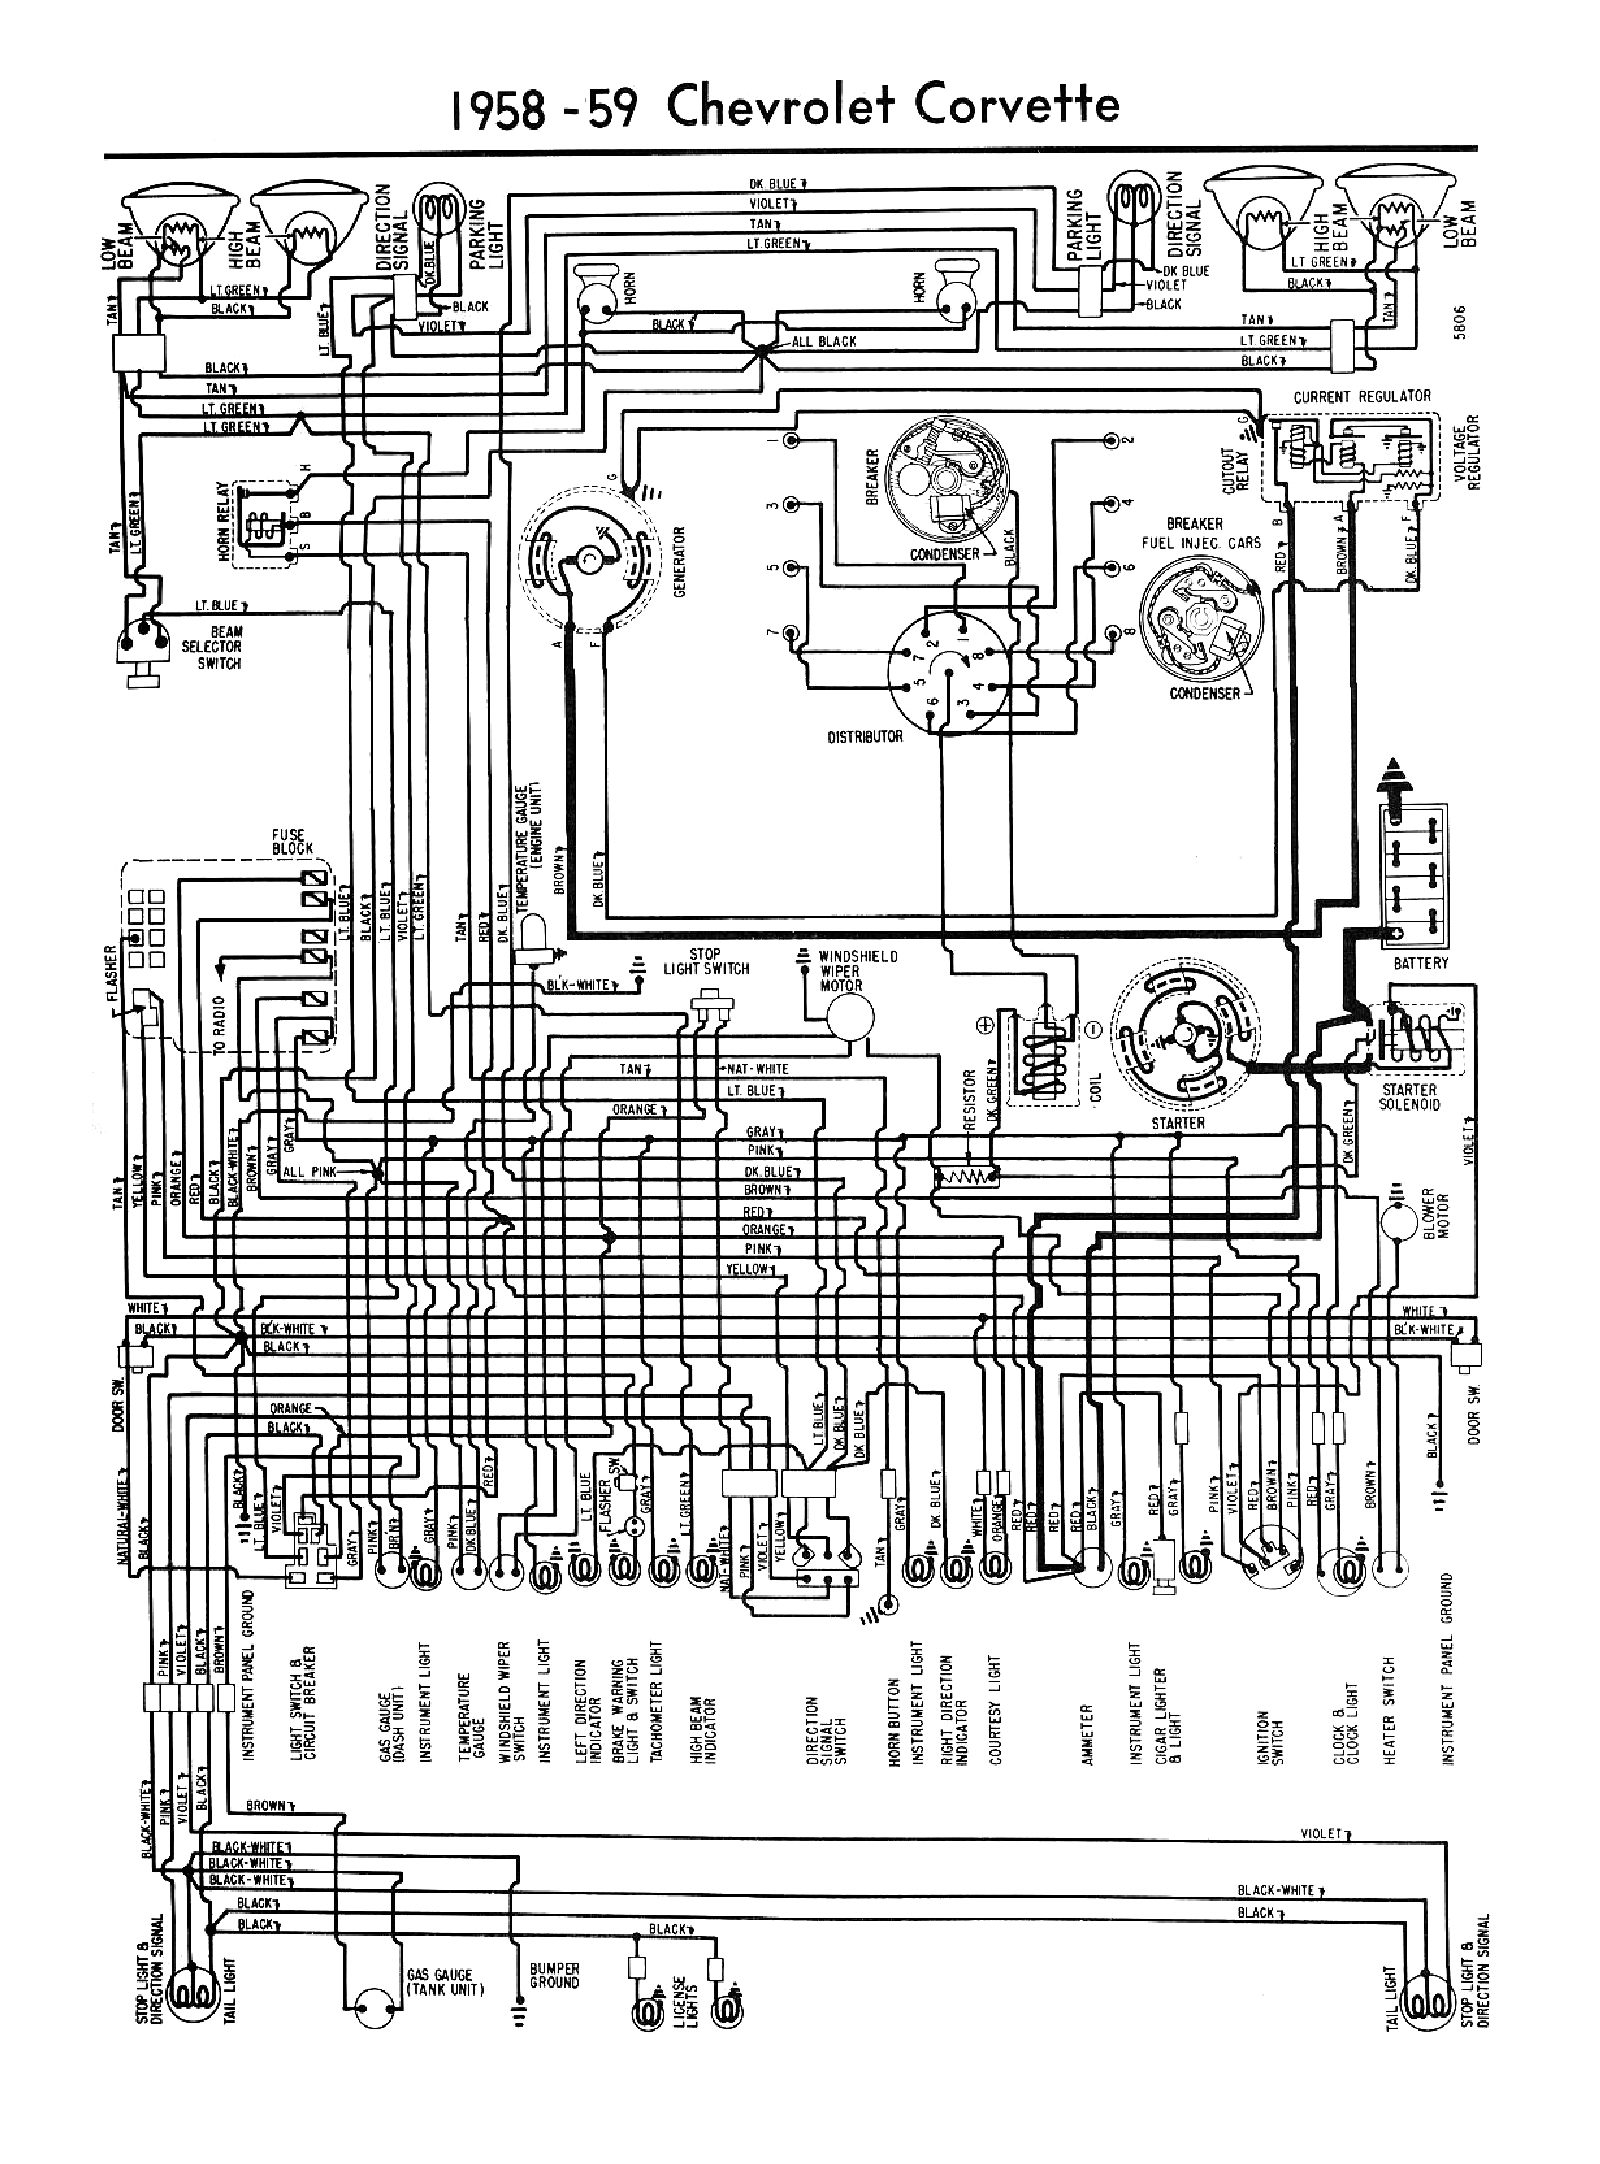 Enjoyable 1980 Diagram Electrical Wiring Davies Corvette Parts Accessories Wiring Cloud Monangrecoveryedborg